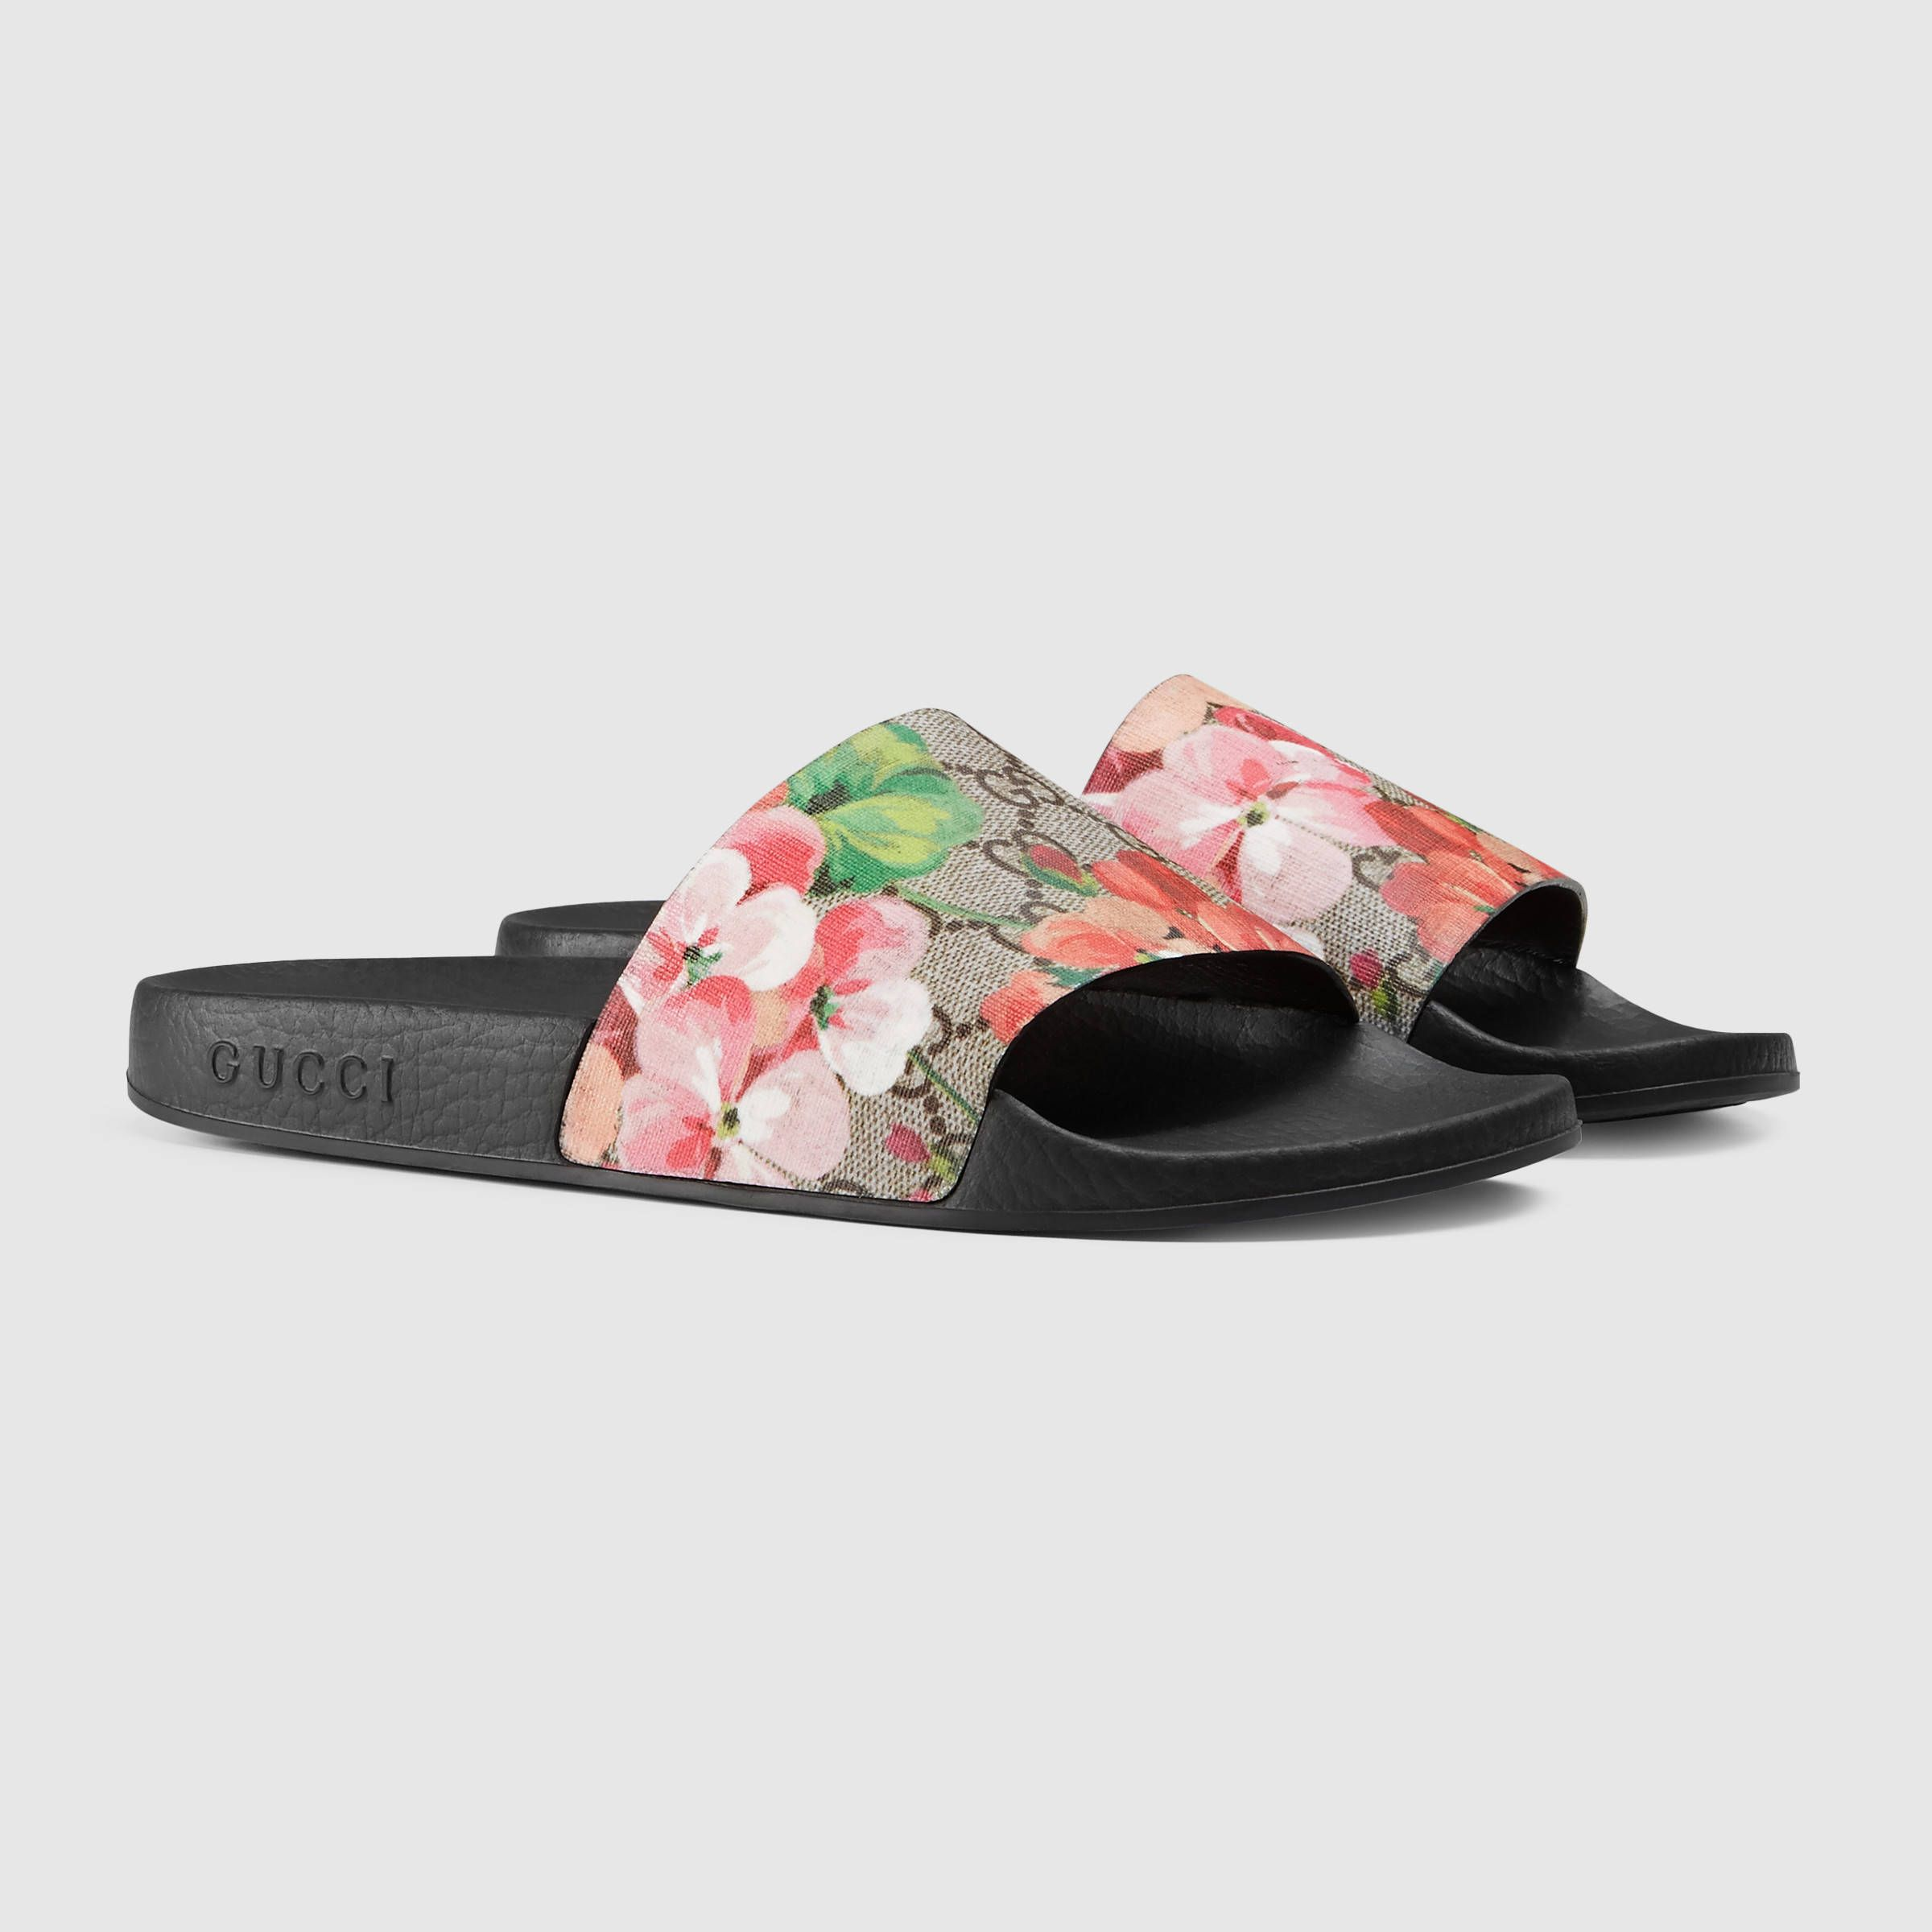 63a4ee1b27 GG Blooms Supreme slide sandal - Gucci Women s Sandals 408508KU2008919